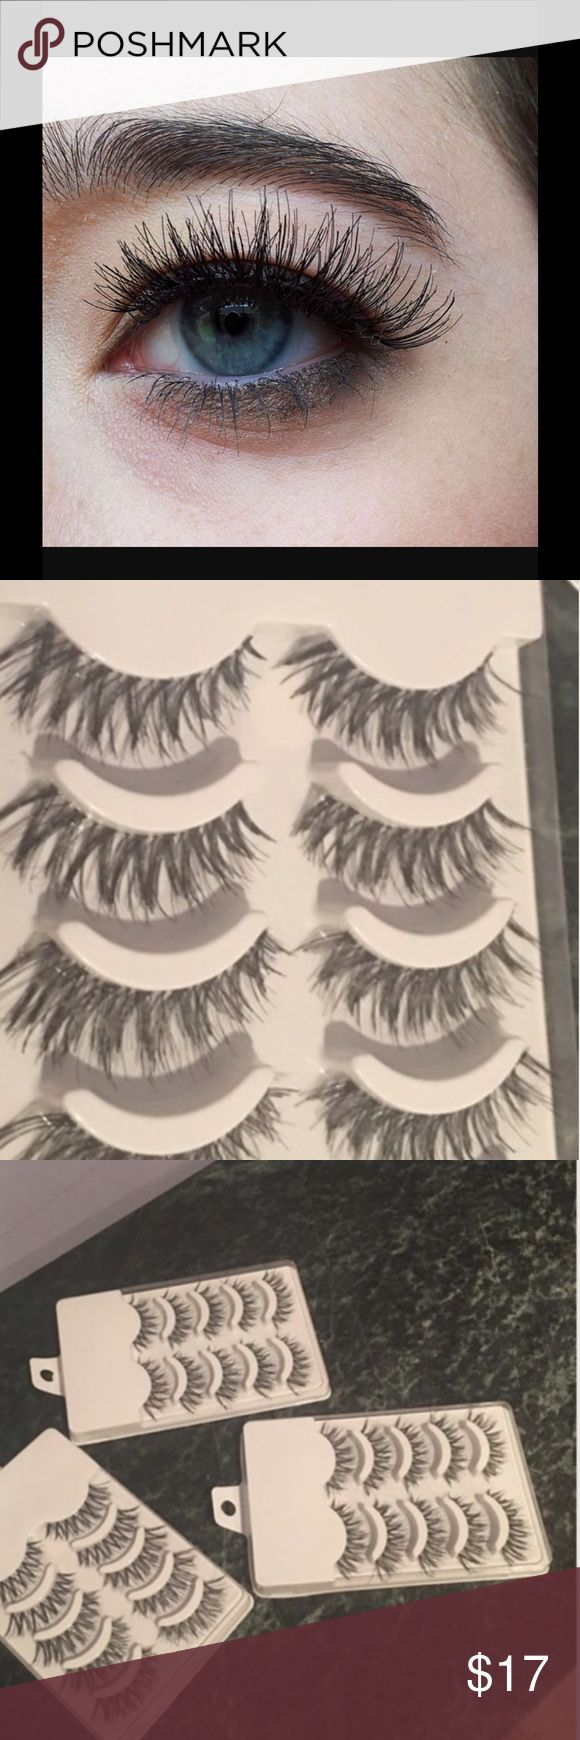 15 pairs human eyelashes and a free glue 15 pair human eyelashes and a free glue. Ship fast, it's my lowest, check my closet, I do bundles 5% off from 2 items and more. It's my lowest - cheapest on a market. Makeup False Eyelashes